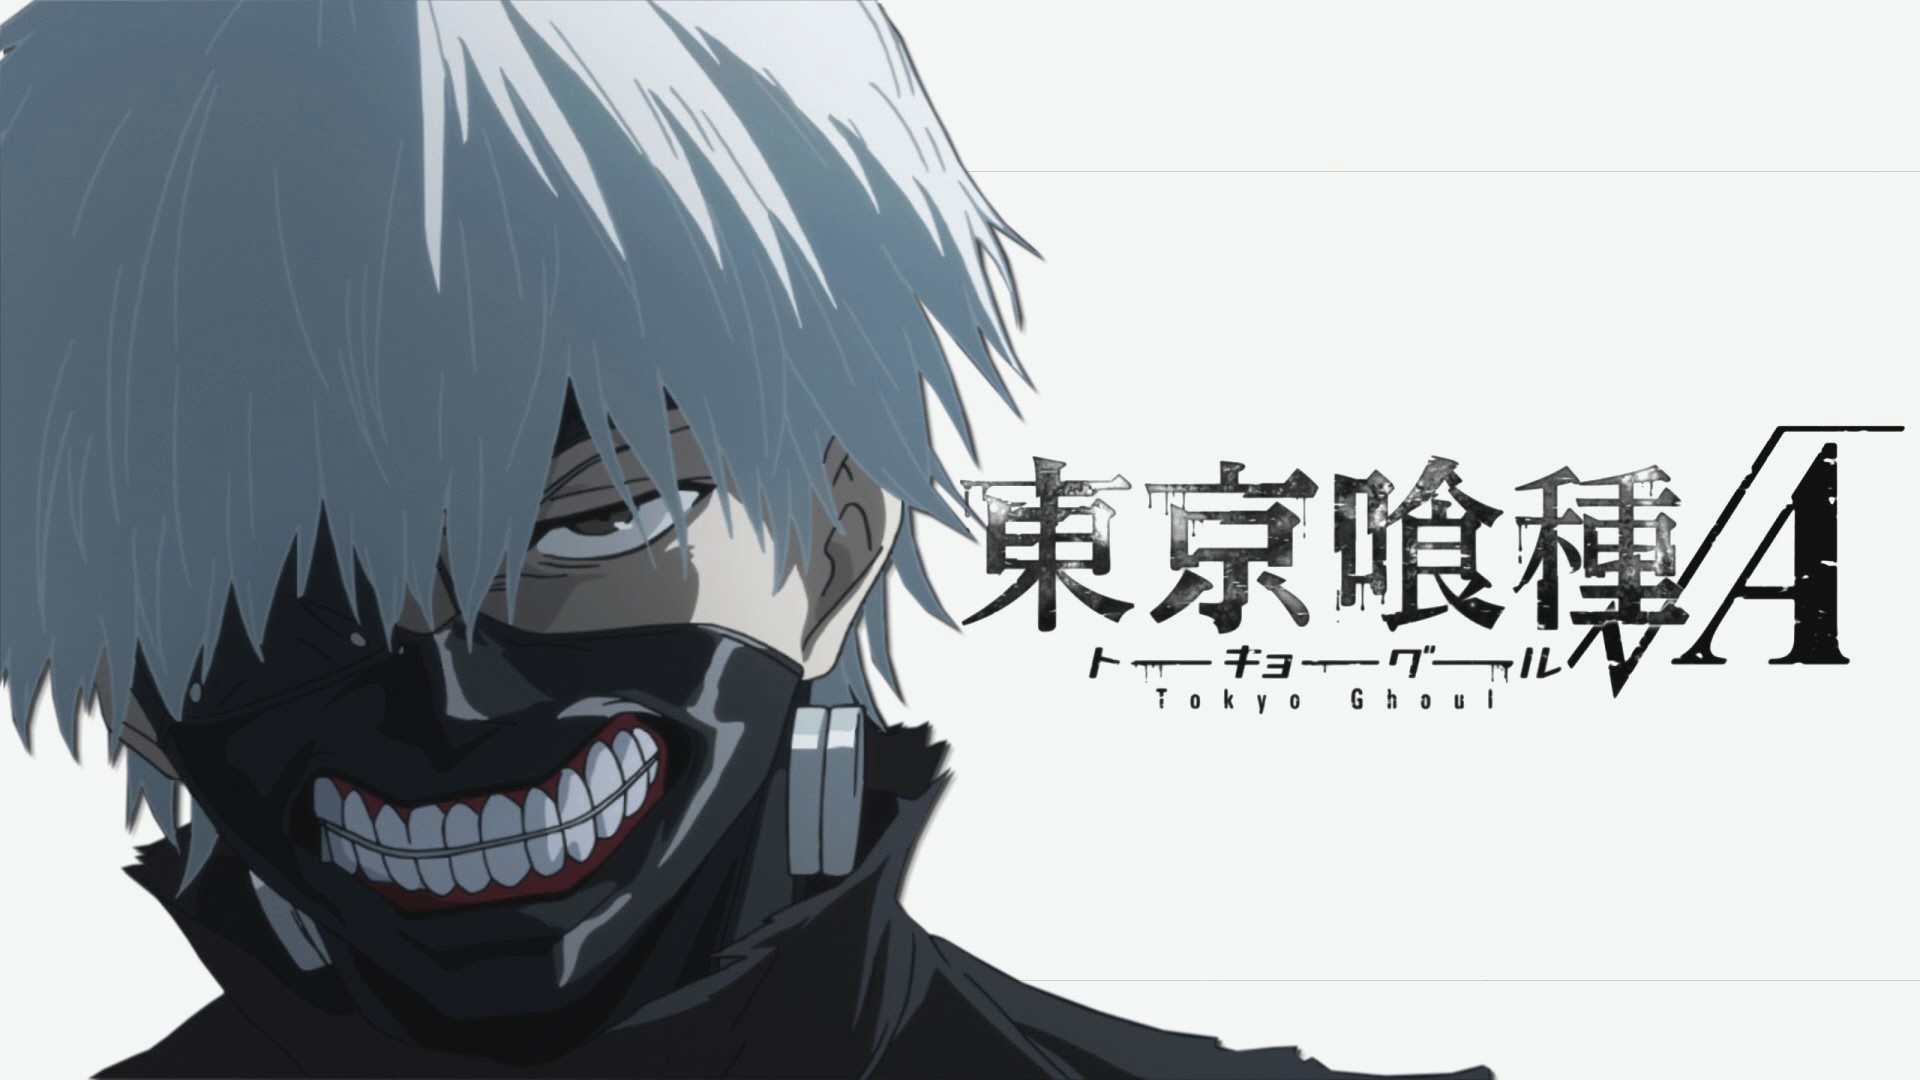 1920x1080 Tokyo Ghoul wallpapers HD